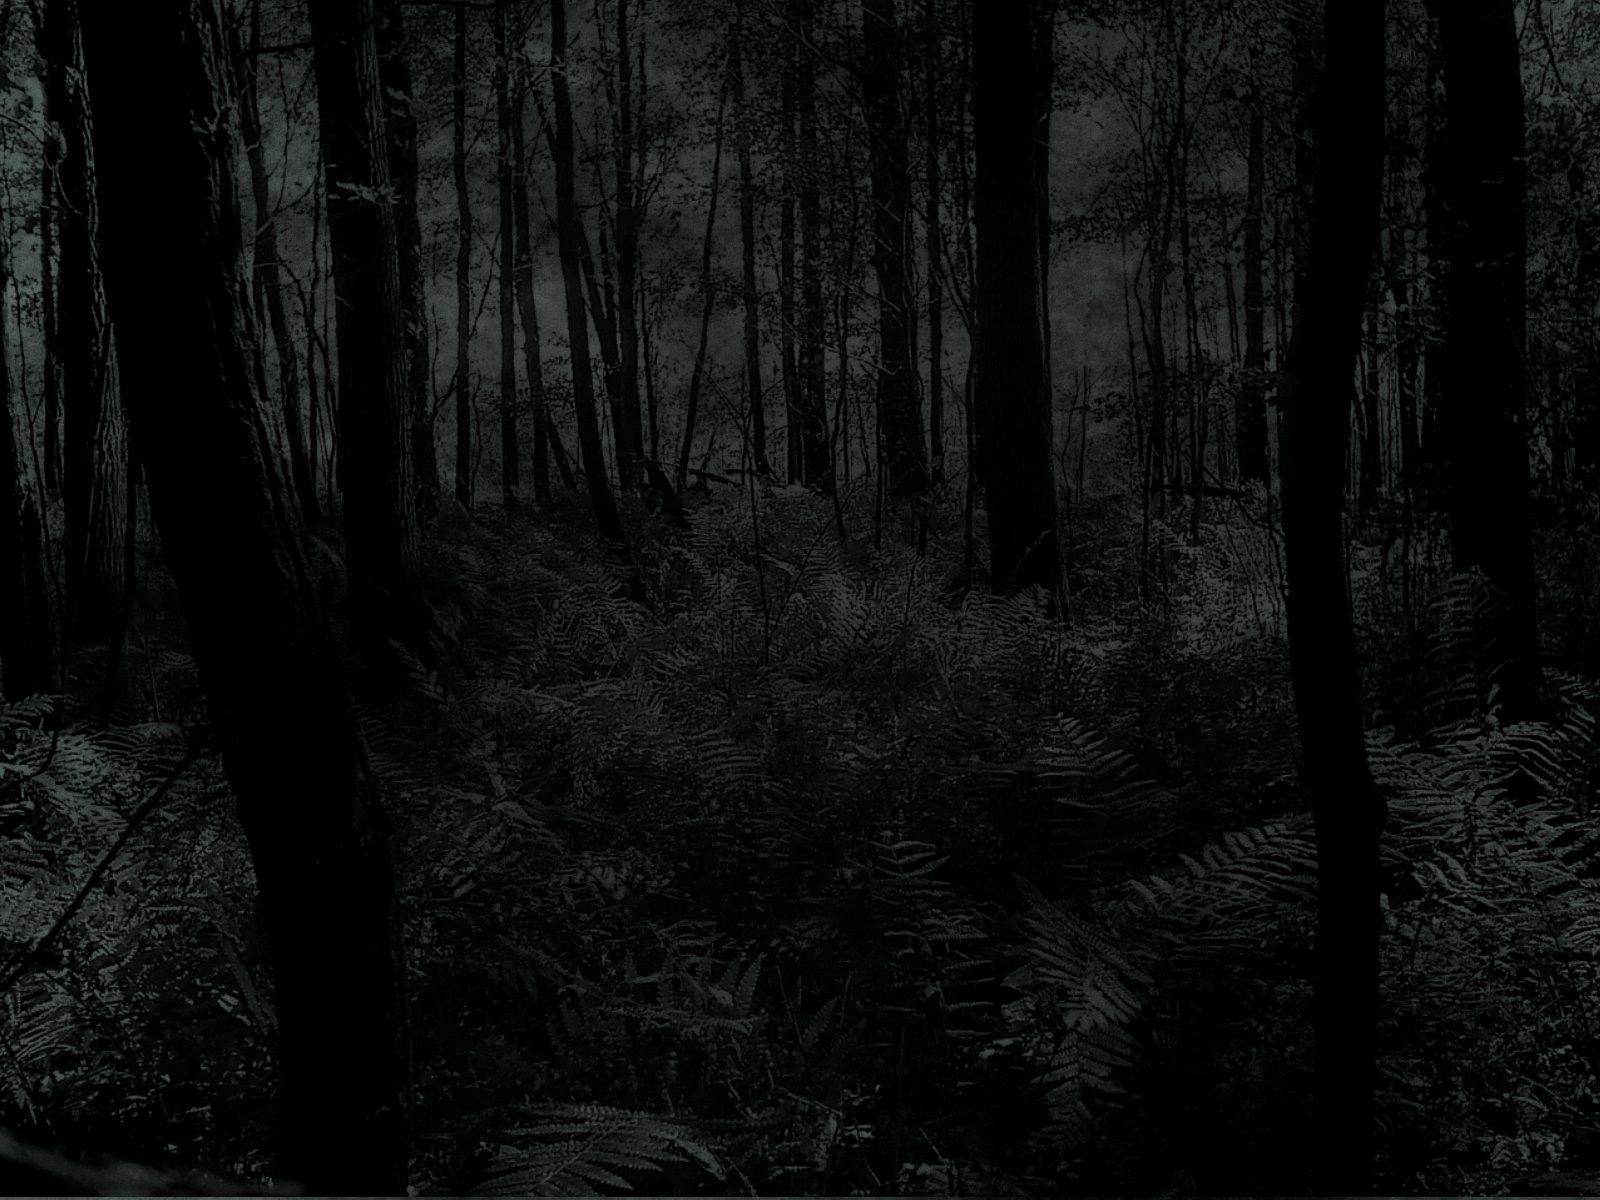 Dark woods picture hd dark woods picture dark woods pictures hd - Dark Woods Background Hd